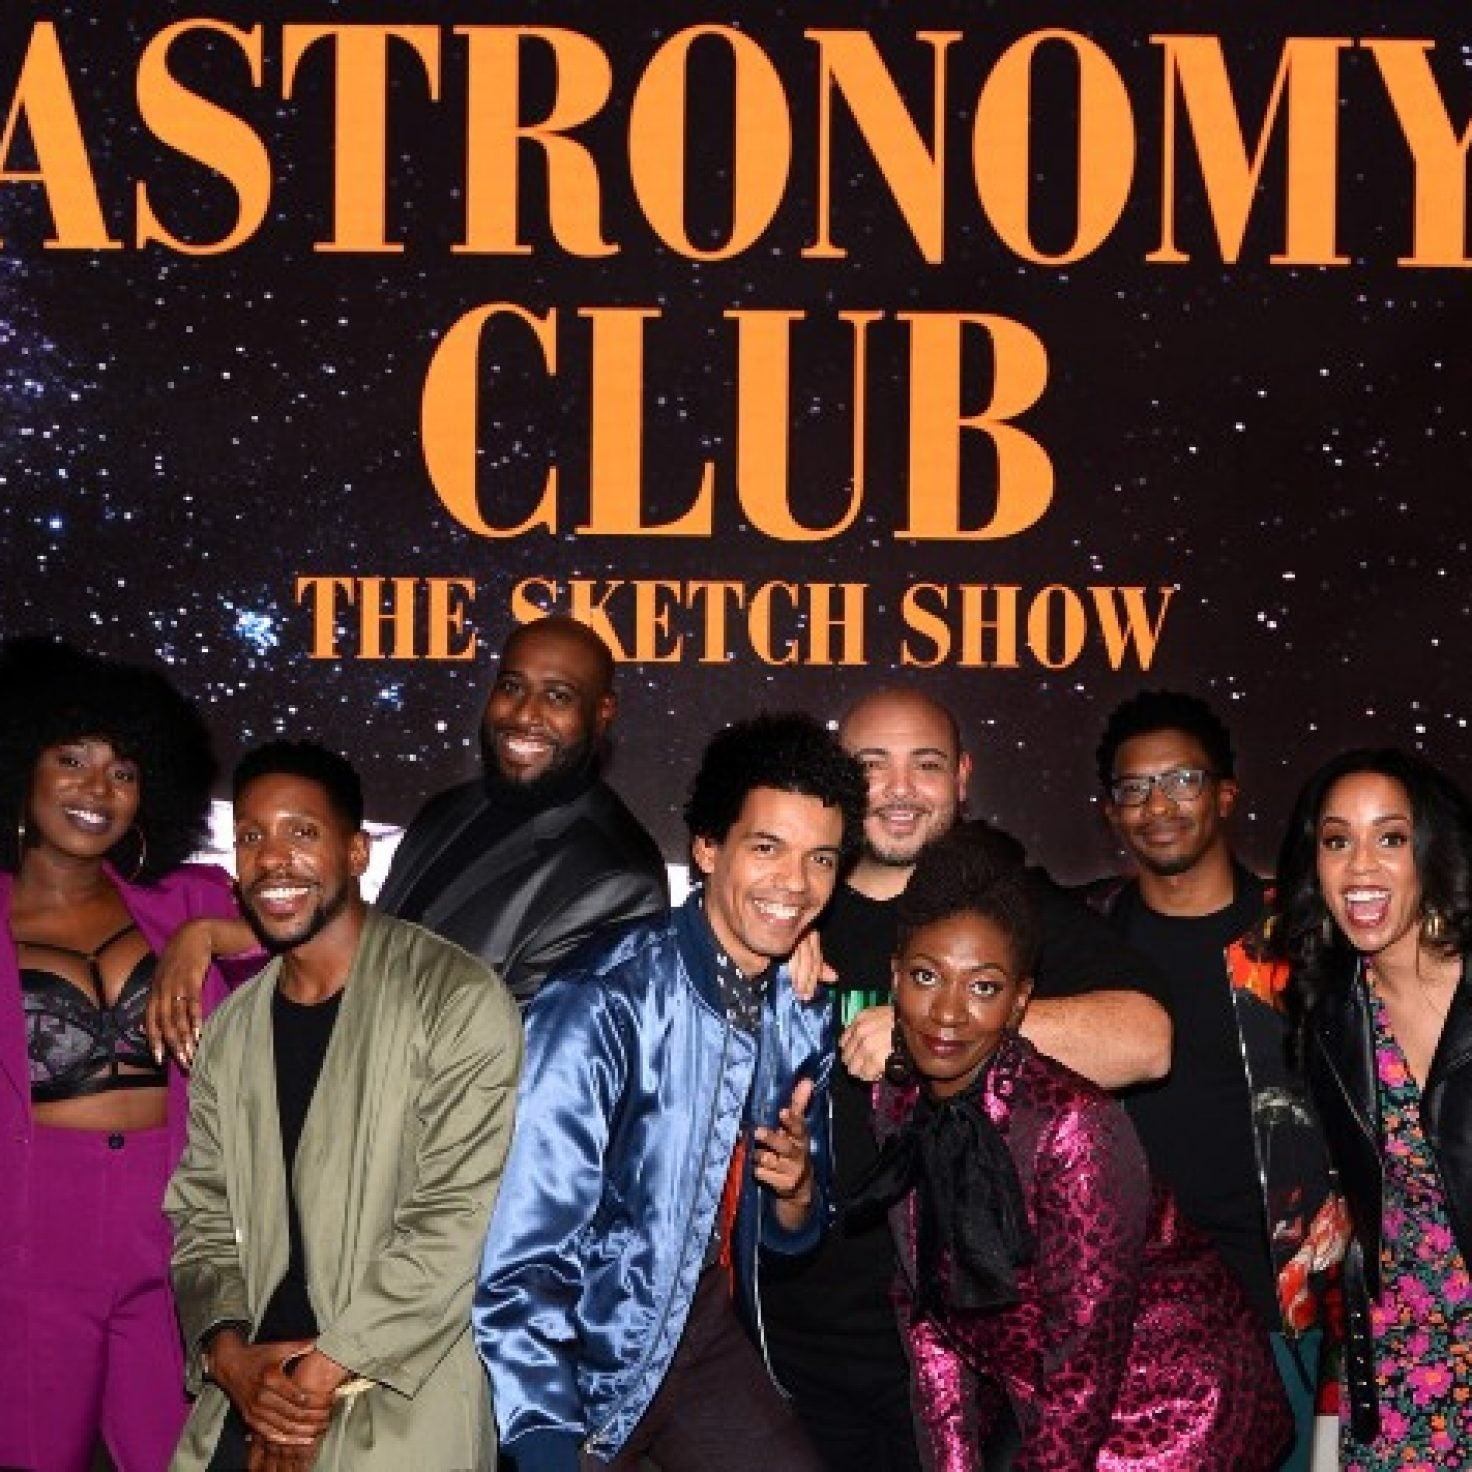 This Sketch From 'Astronomy Club' Is Like A Funny PSA For Protecting Your Edges